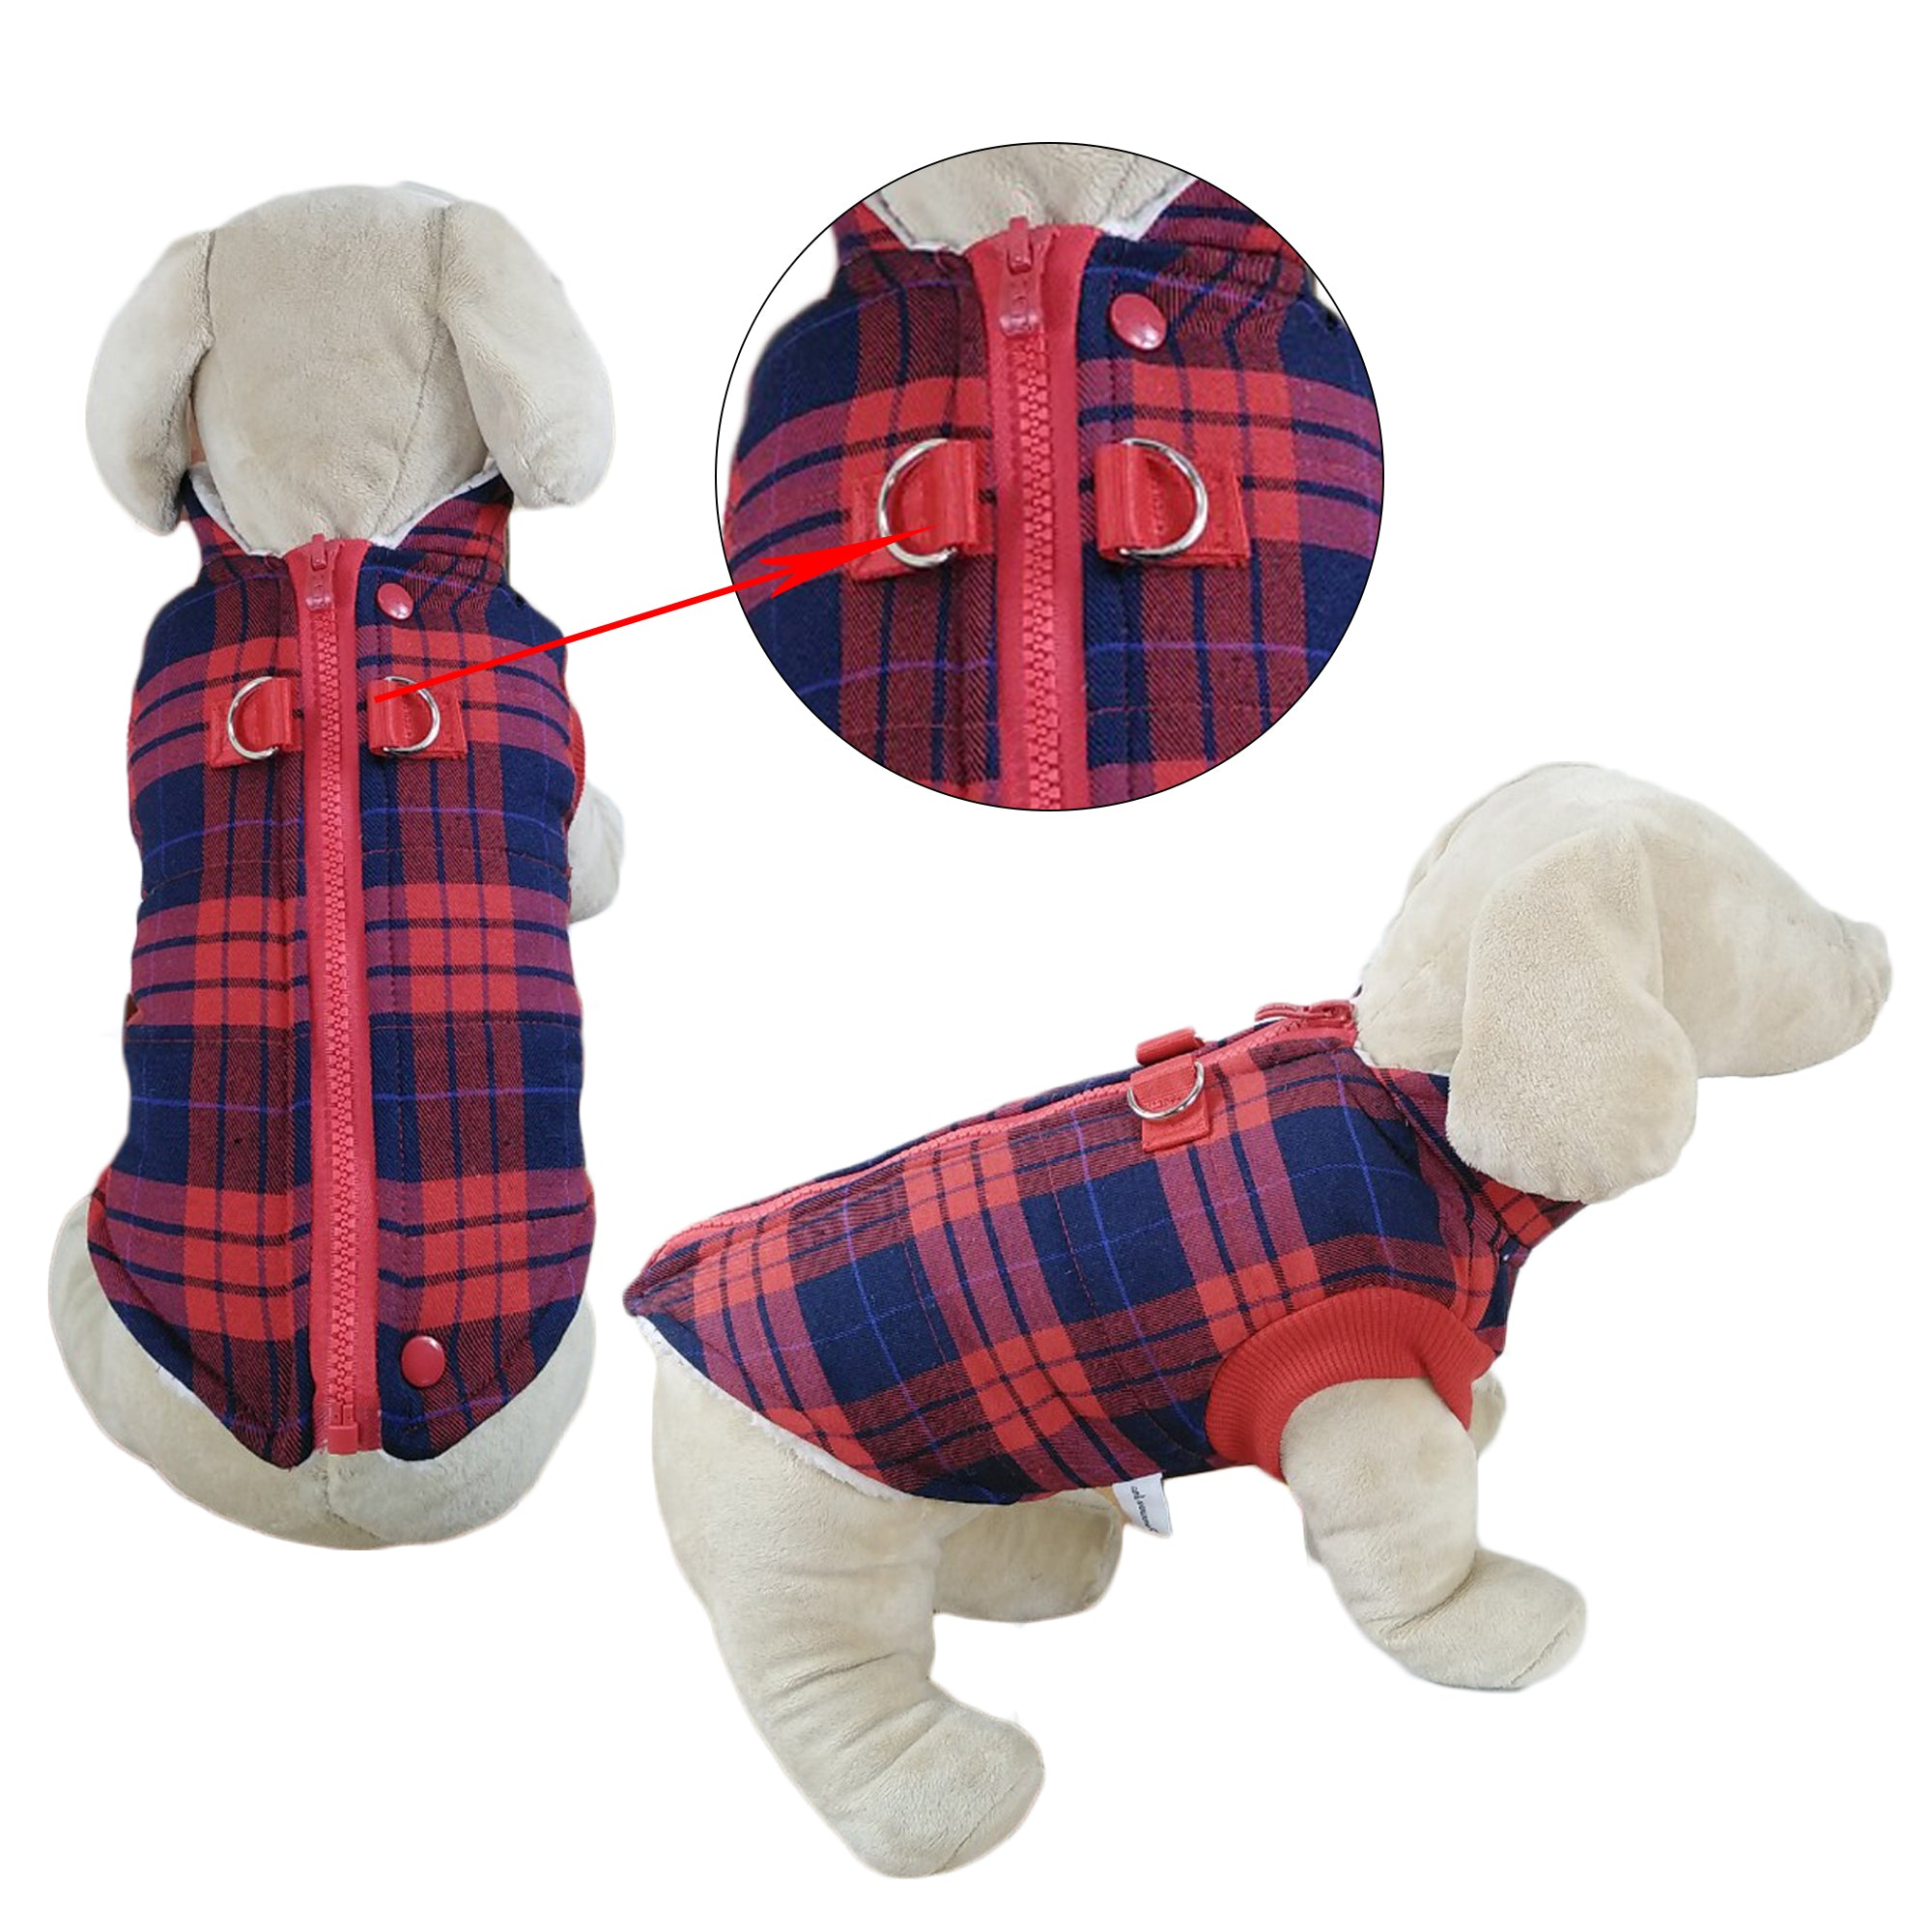 Winter Coat with Thick Fleece Zipper Closure and Leash Ring - Primeware Inc.